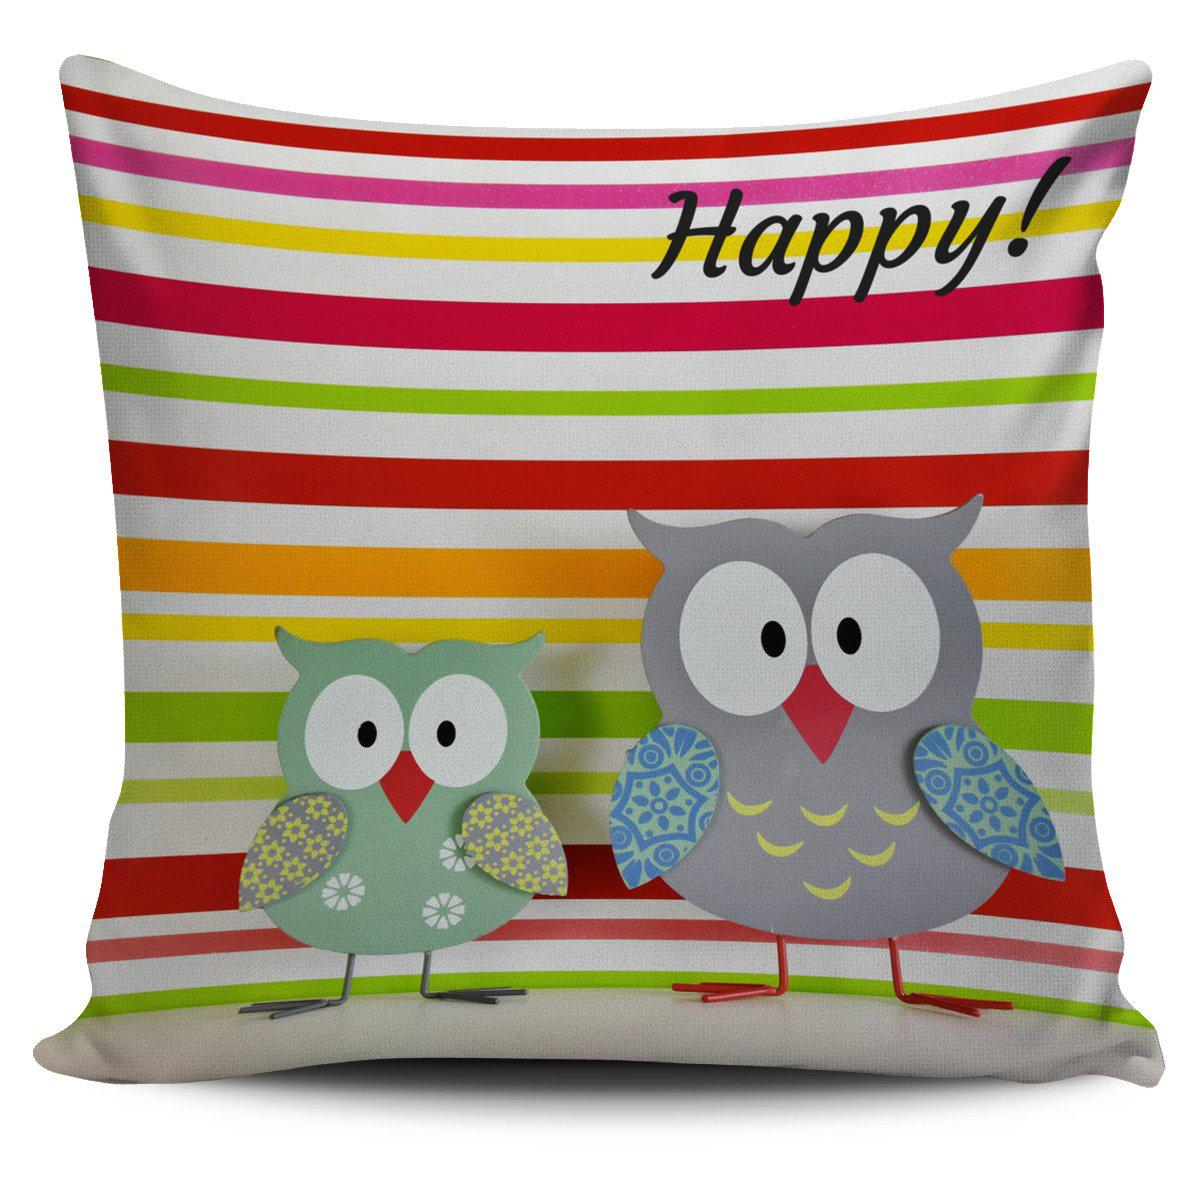 Shopeholic:Pillow Cover Owl Happy